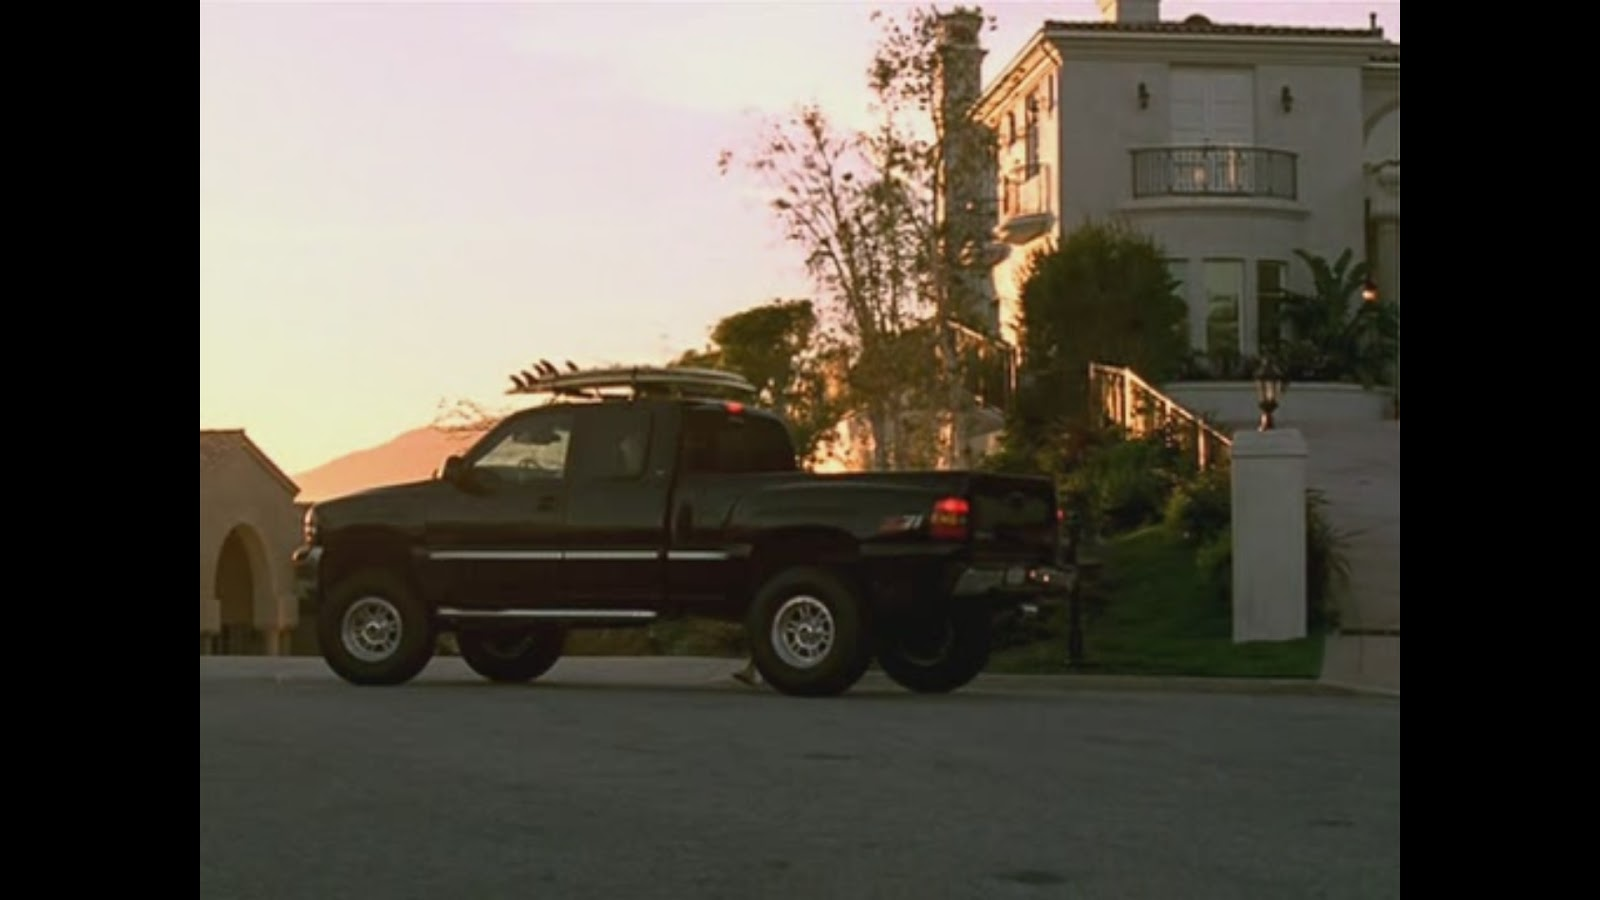 Everything The O.C. : Cars of The O.C.: Luke's Pimped Out ...